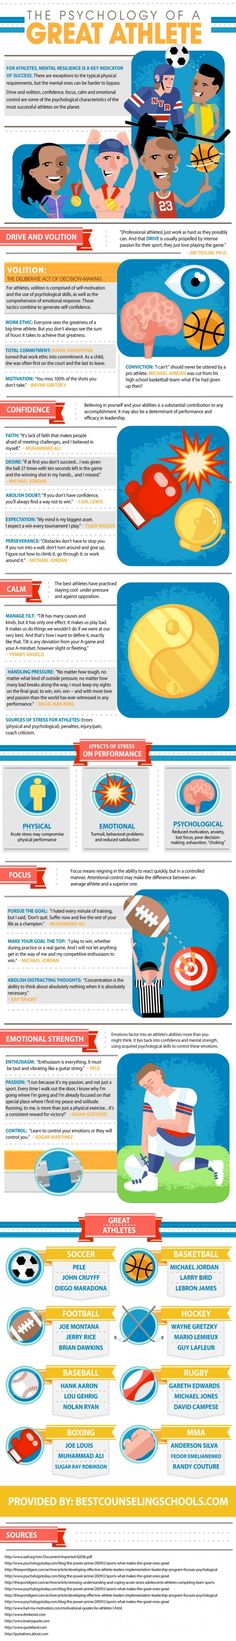 Infographic: The Psychology of a Great Athlete